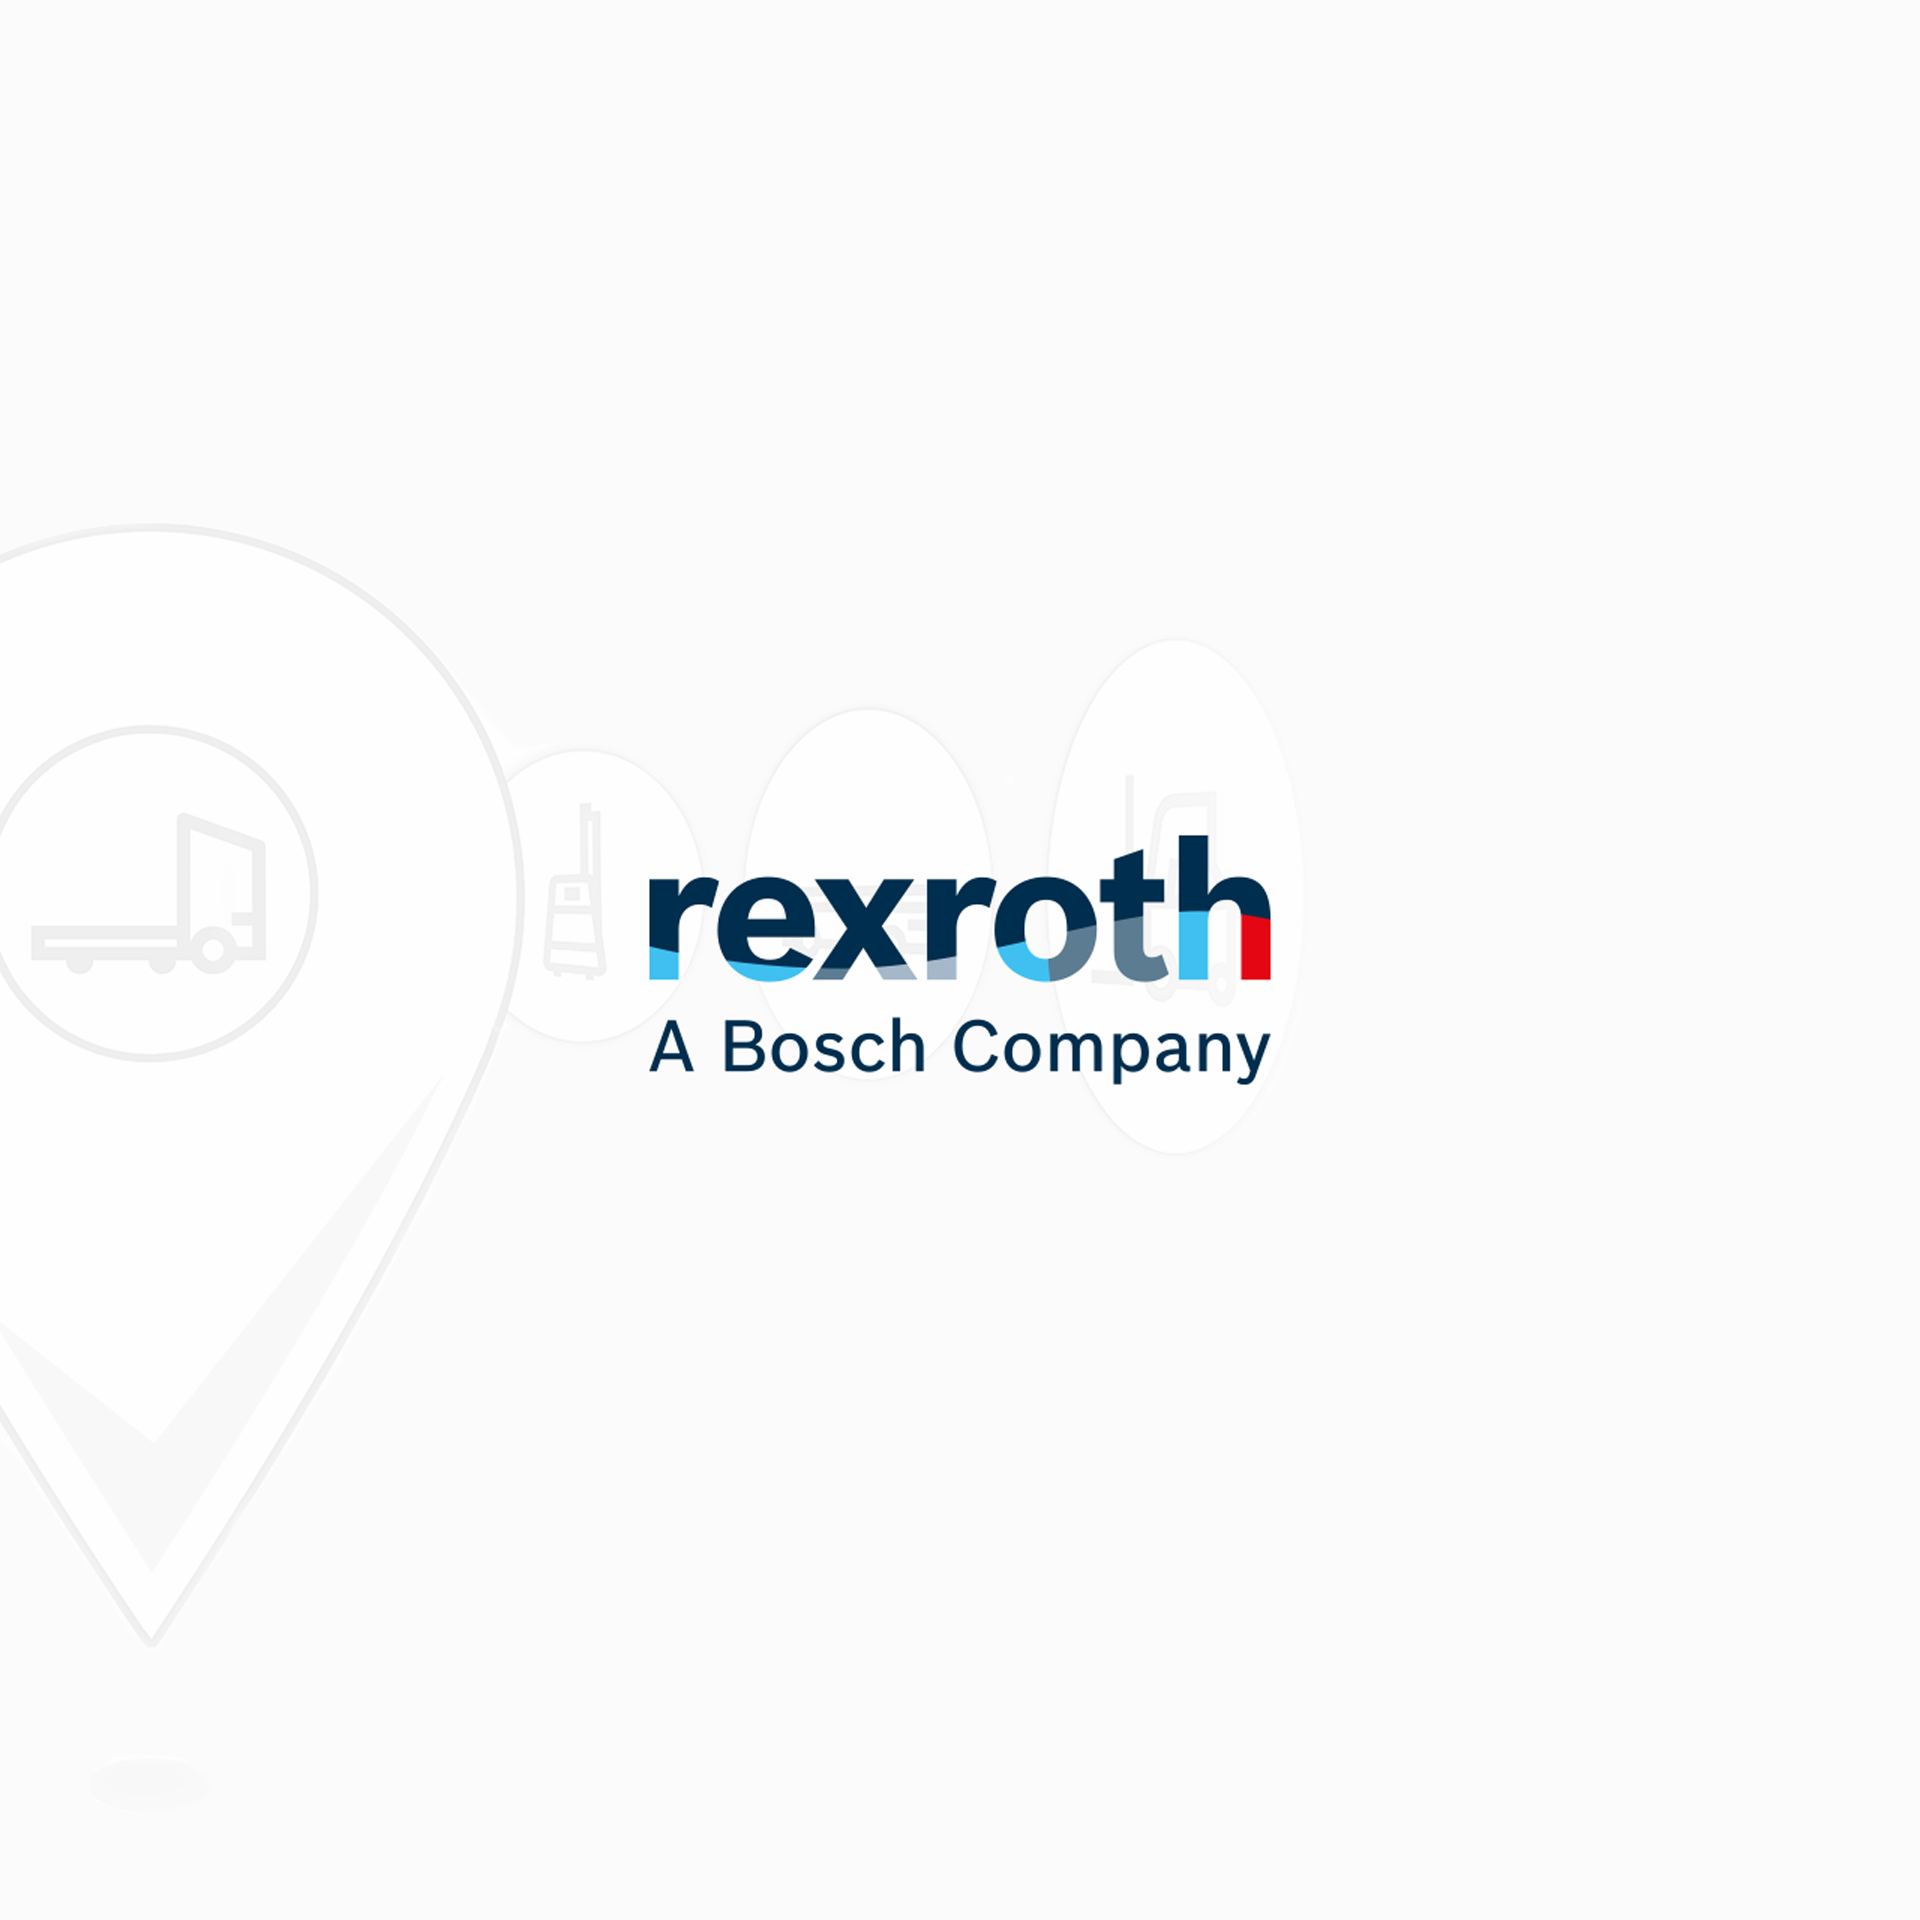 Referenz Bosch rexroth